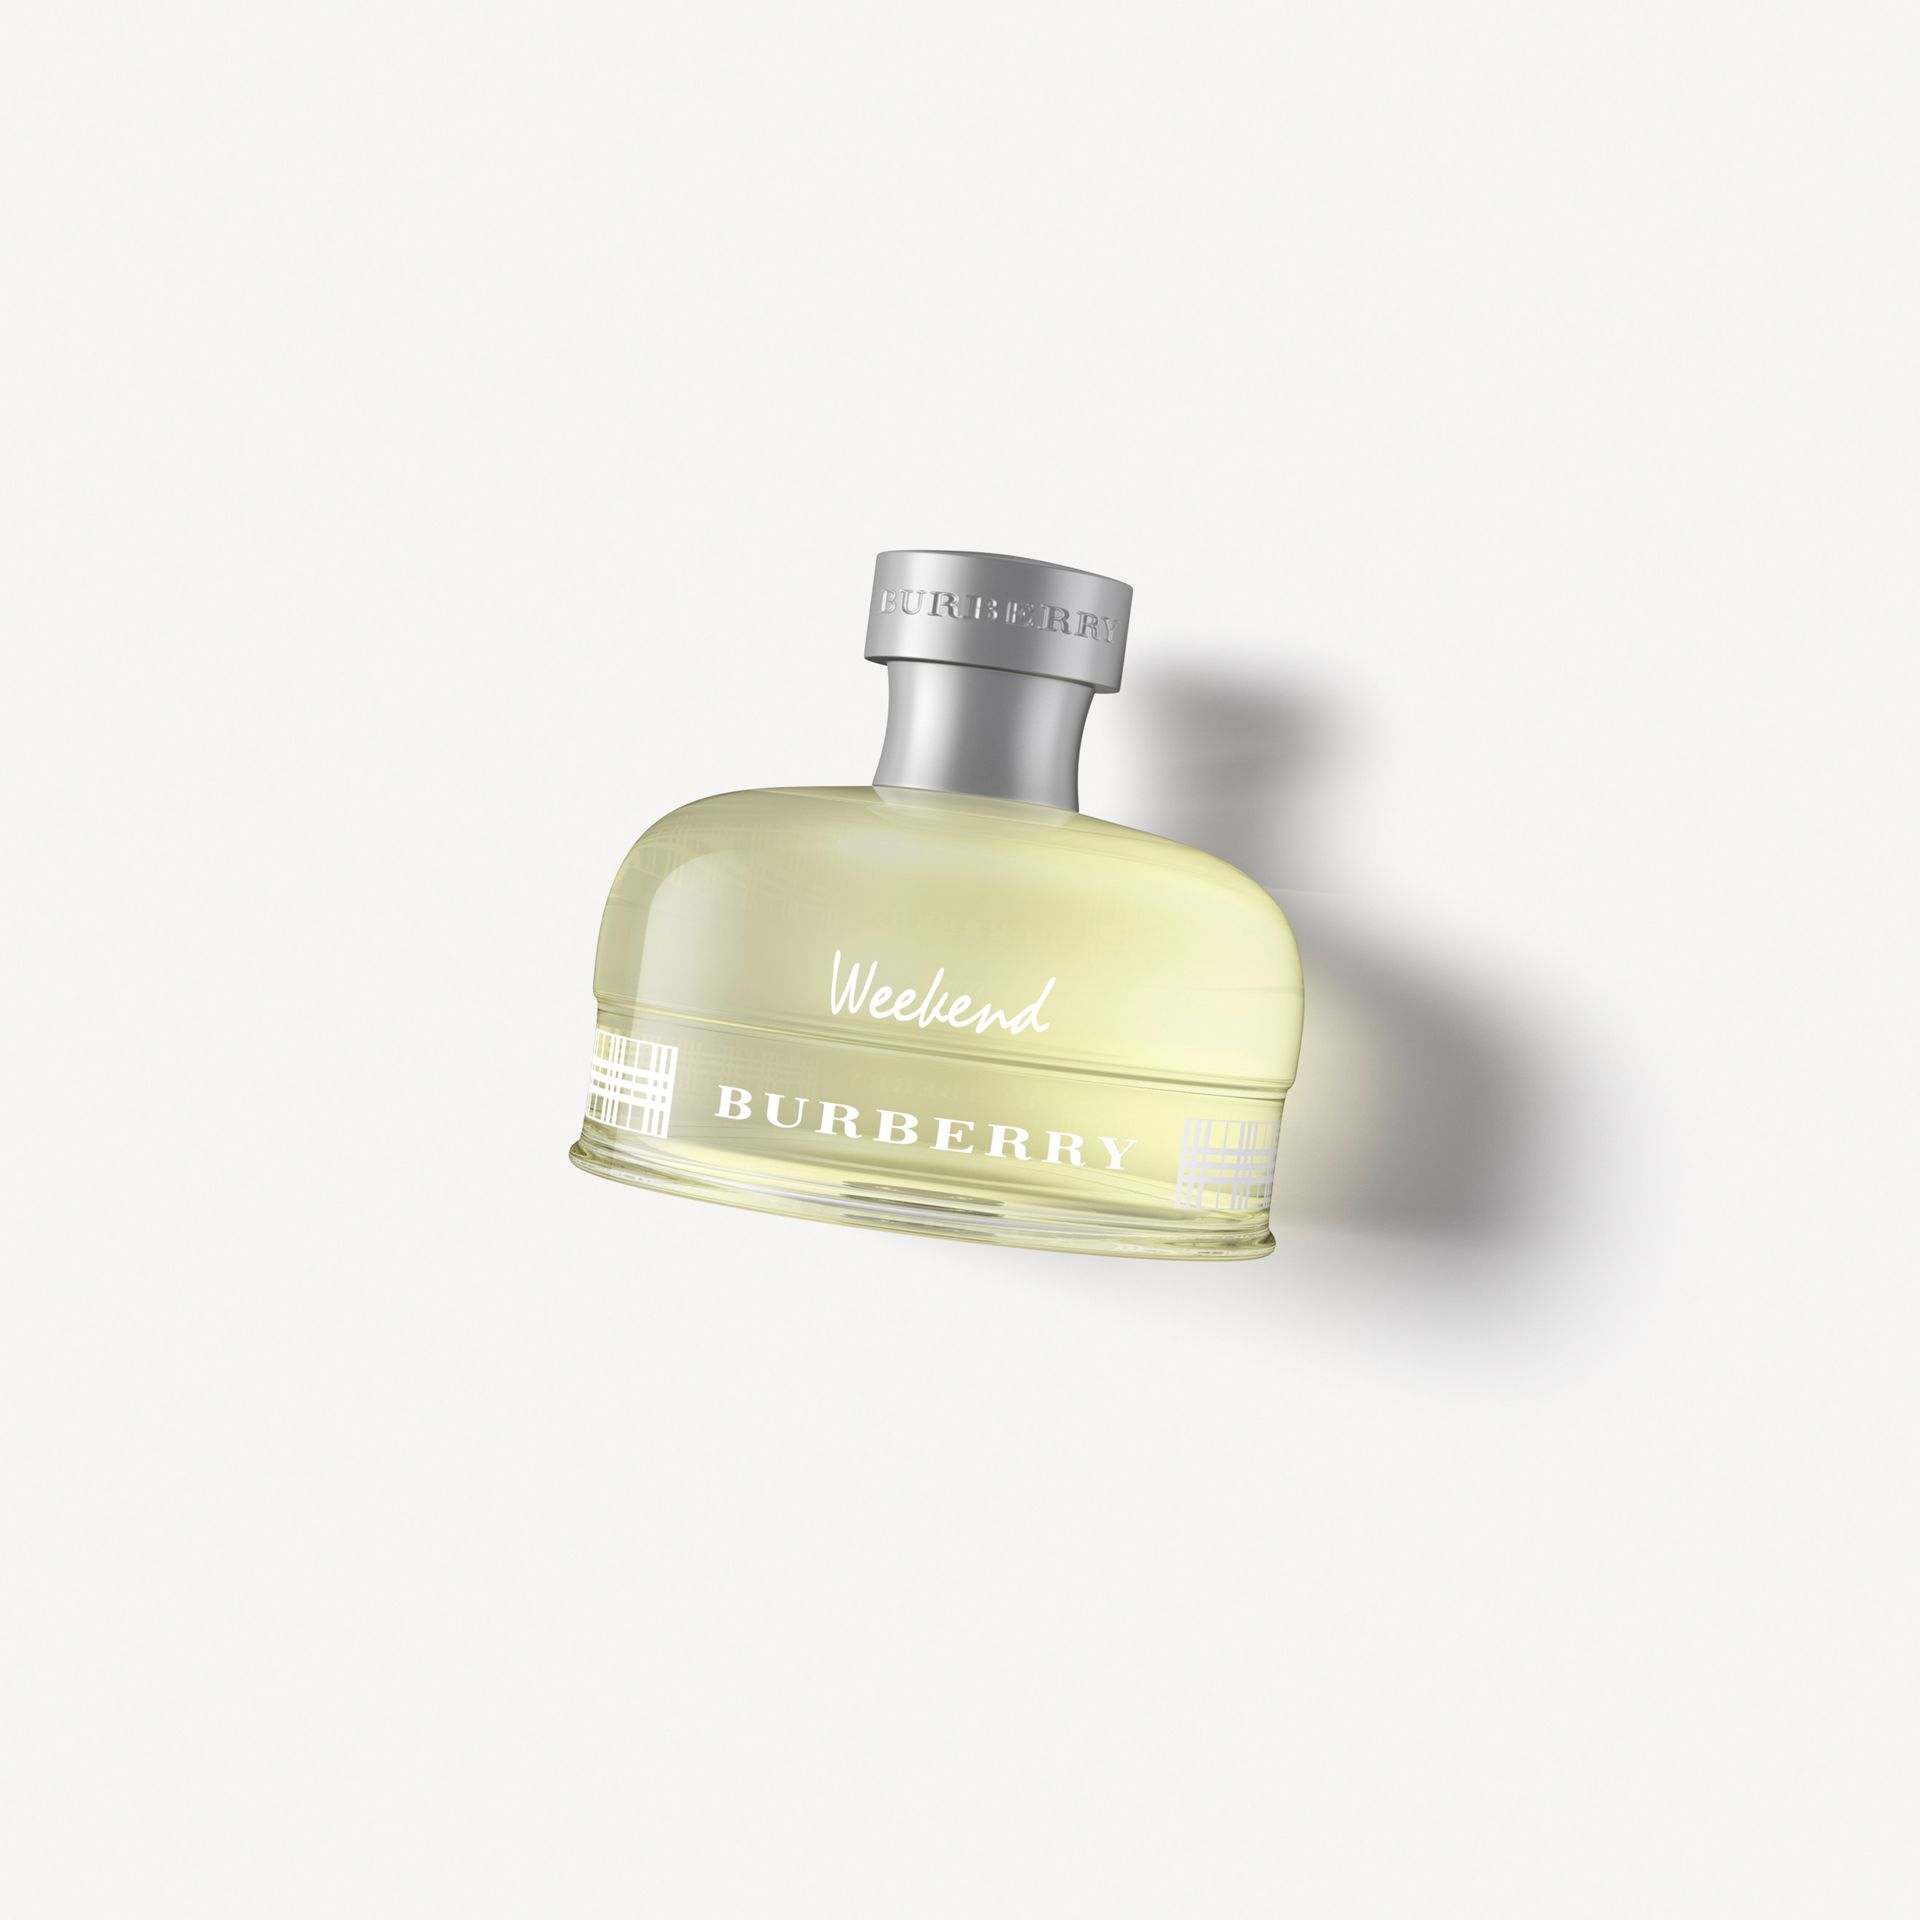 Burberry Weekend Eau de Parfum 100ml - Women | Burberry - gallery image 0